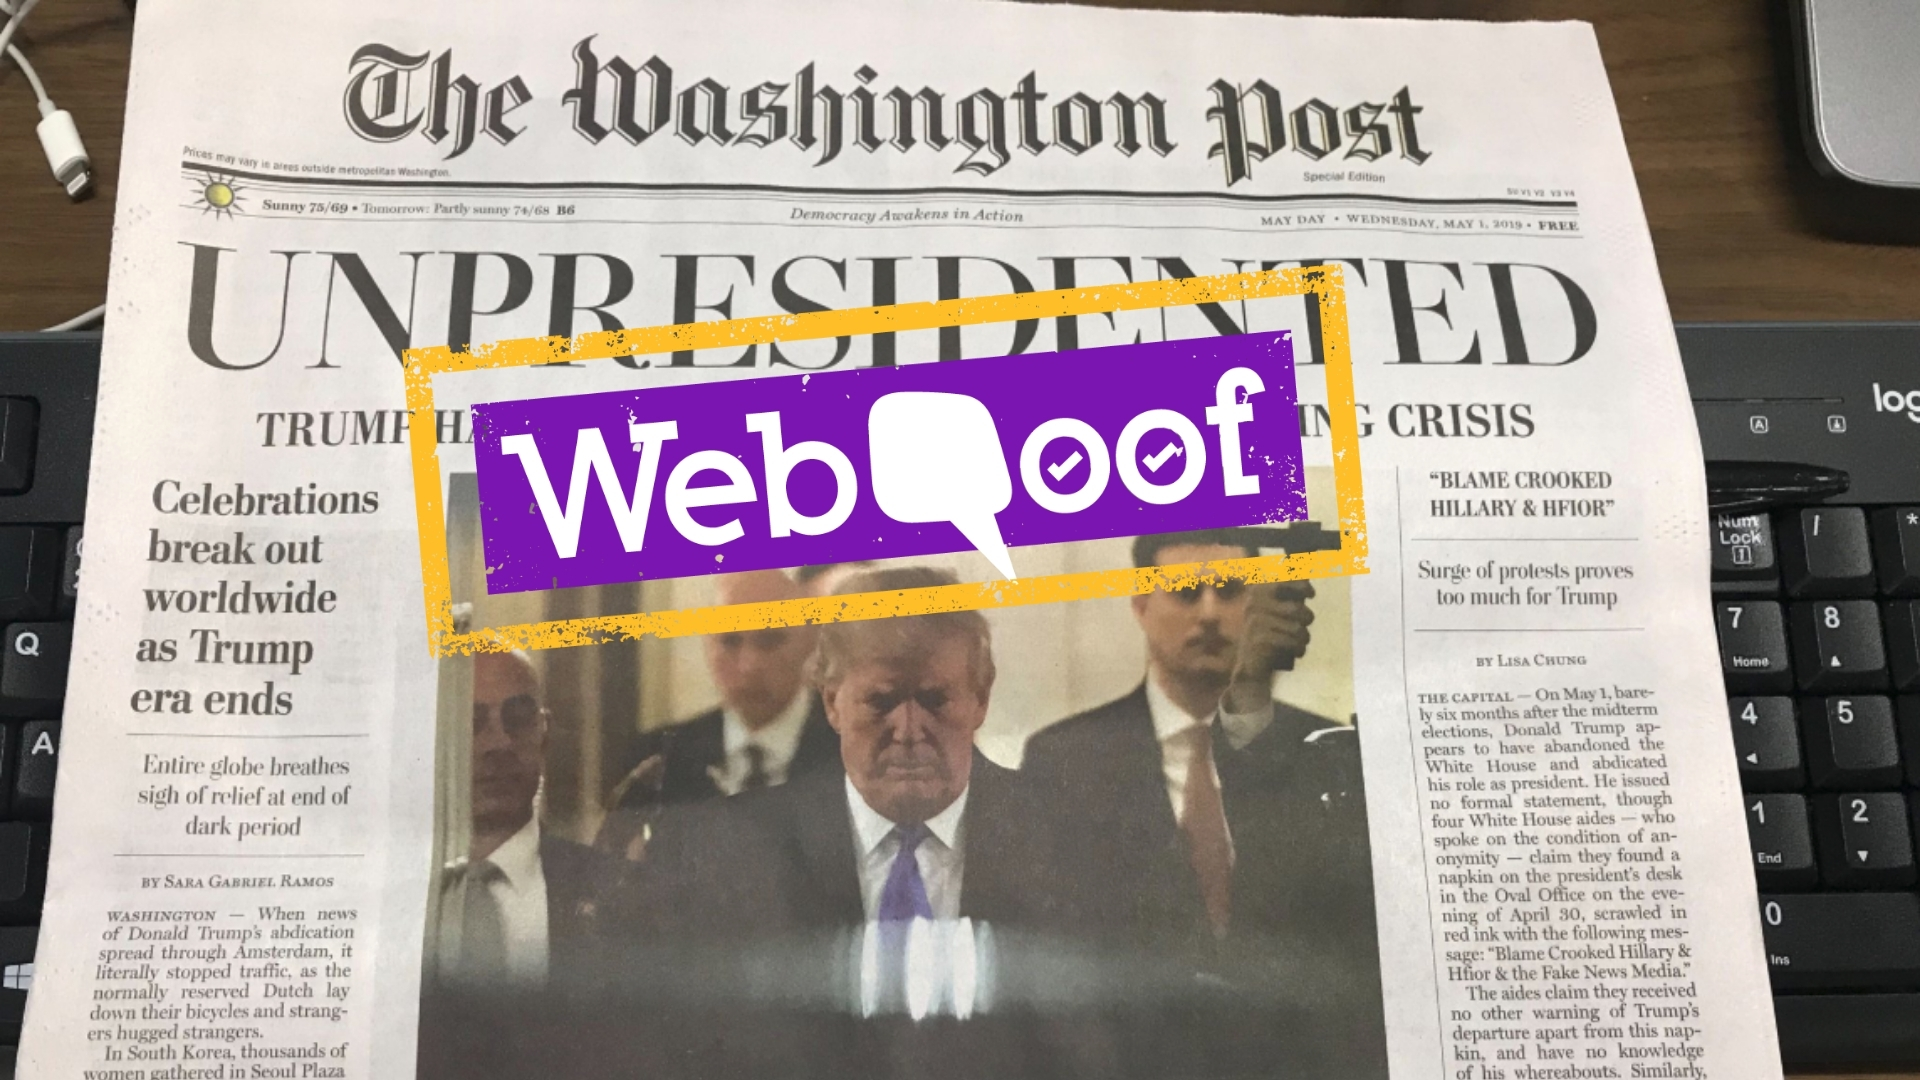 Fake Washington Post Edition on Trump's Resignation Spotted in DC